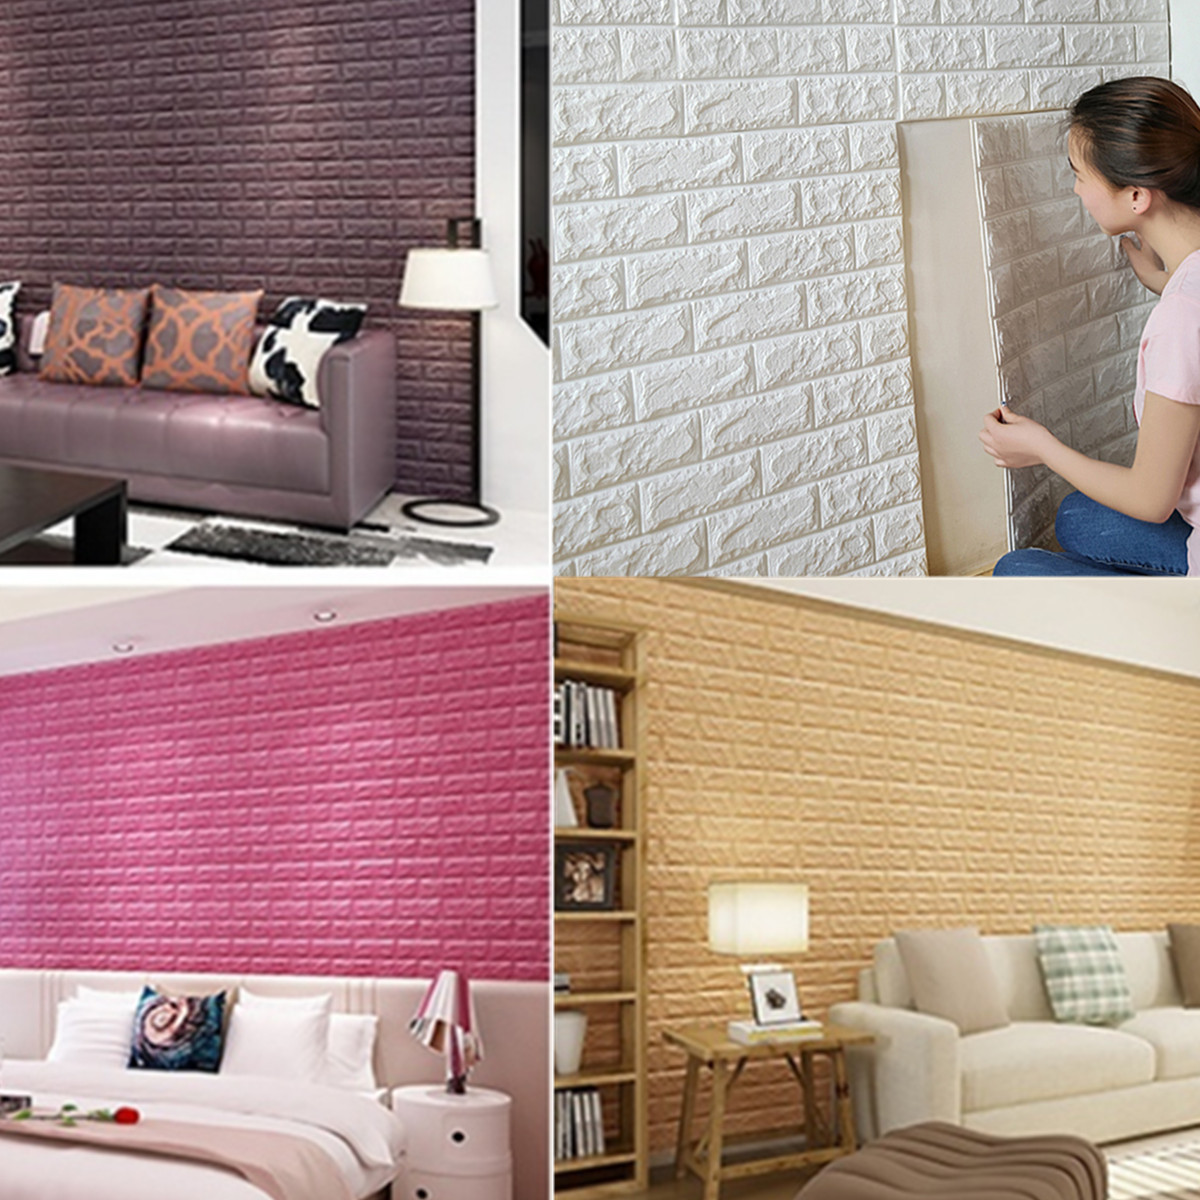 Peal and Stick PE Foam Waterproof 3D Wallpaper DIY Wall Stickers Embossed Brick Stone Wall Decor 23.6×23.6 inch Room Children Bedroom Decor Self-adhesive